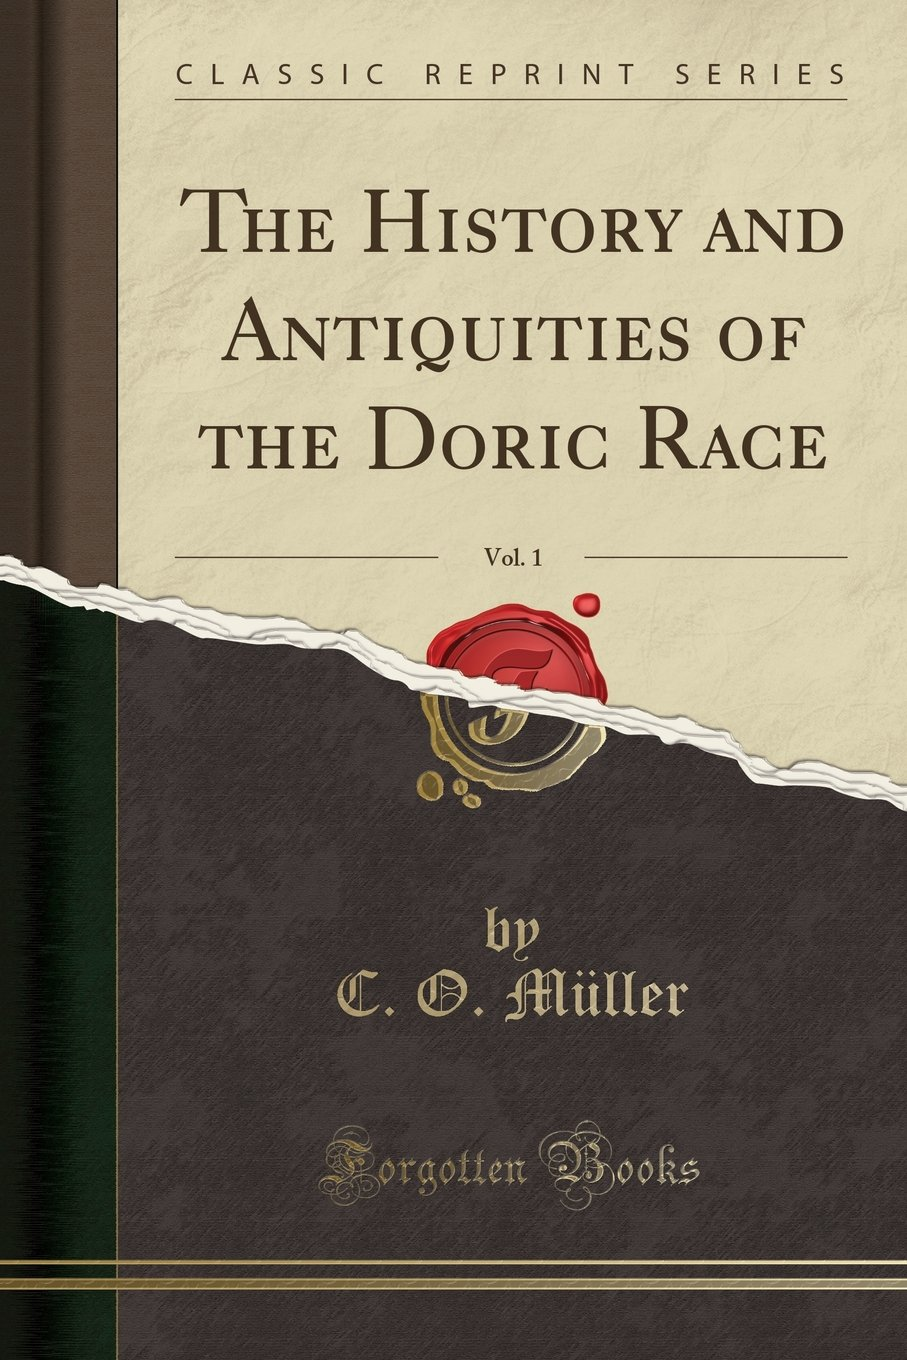 Read Online The History and Antiquities of the Doric Race, Vol. 1 (Classic Reprint) PDF